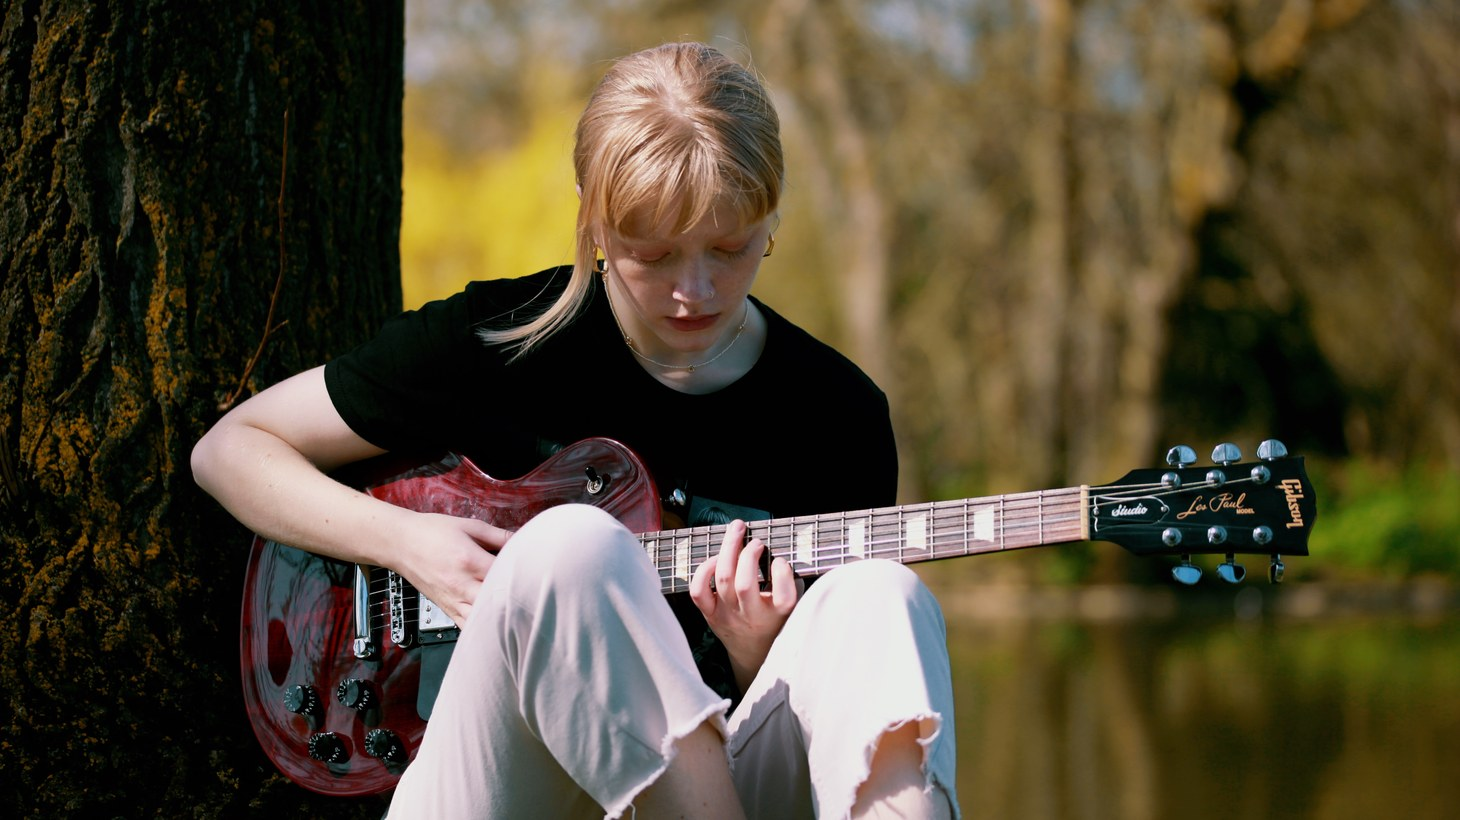 """Rosie Frater-Taylor is a 21-year-old singer, songwriter, and exceptional guitarist from the U.K. Her latest song is """"Better Days,"""" which not only showcases her talent as a singer with jazz flourishes, but floors us with her virtuoso guitar work."""